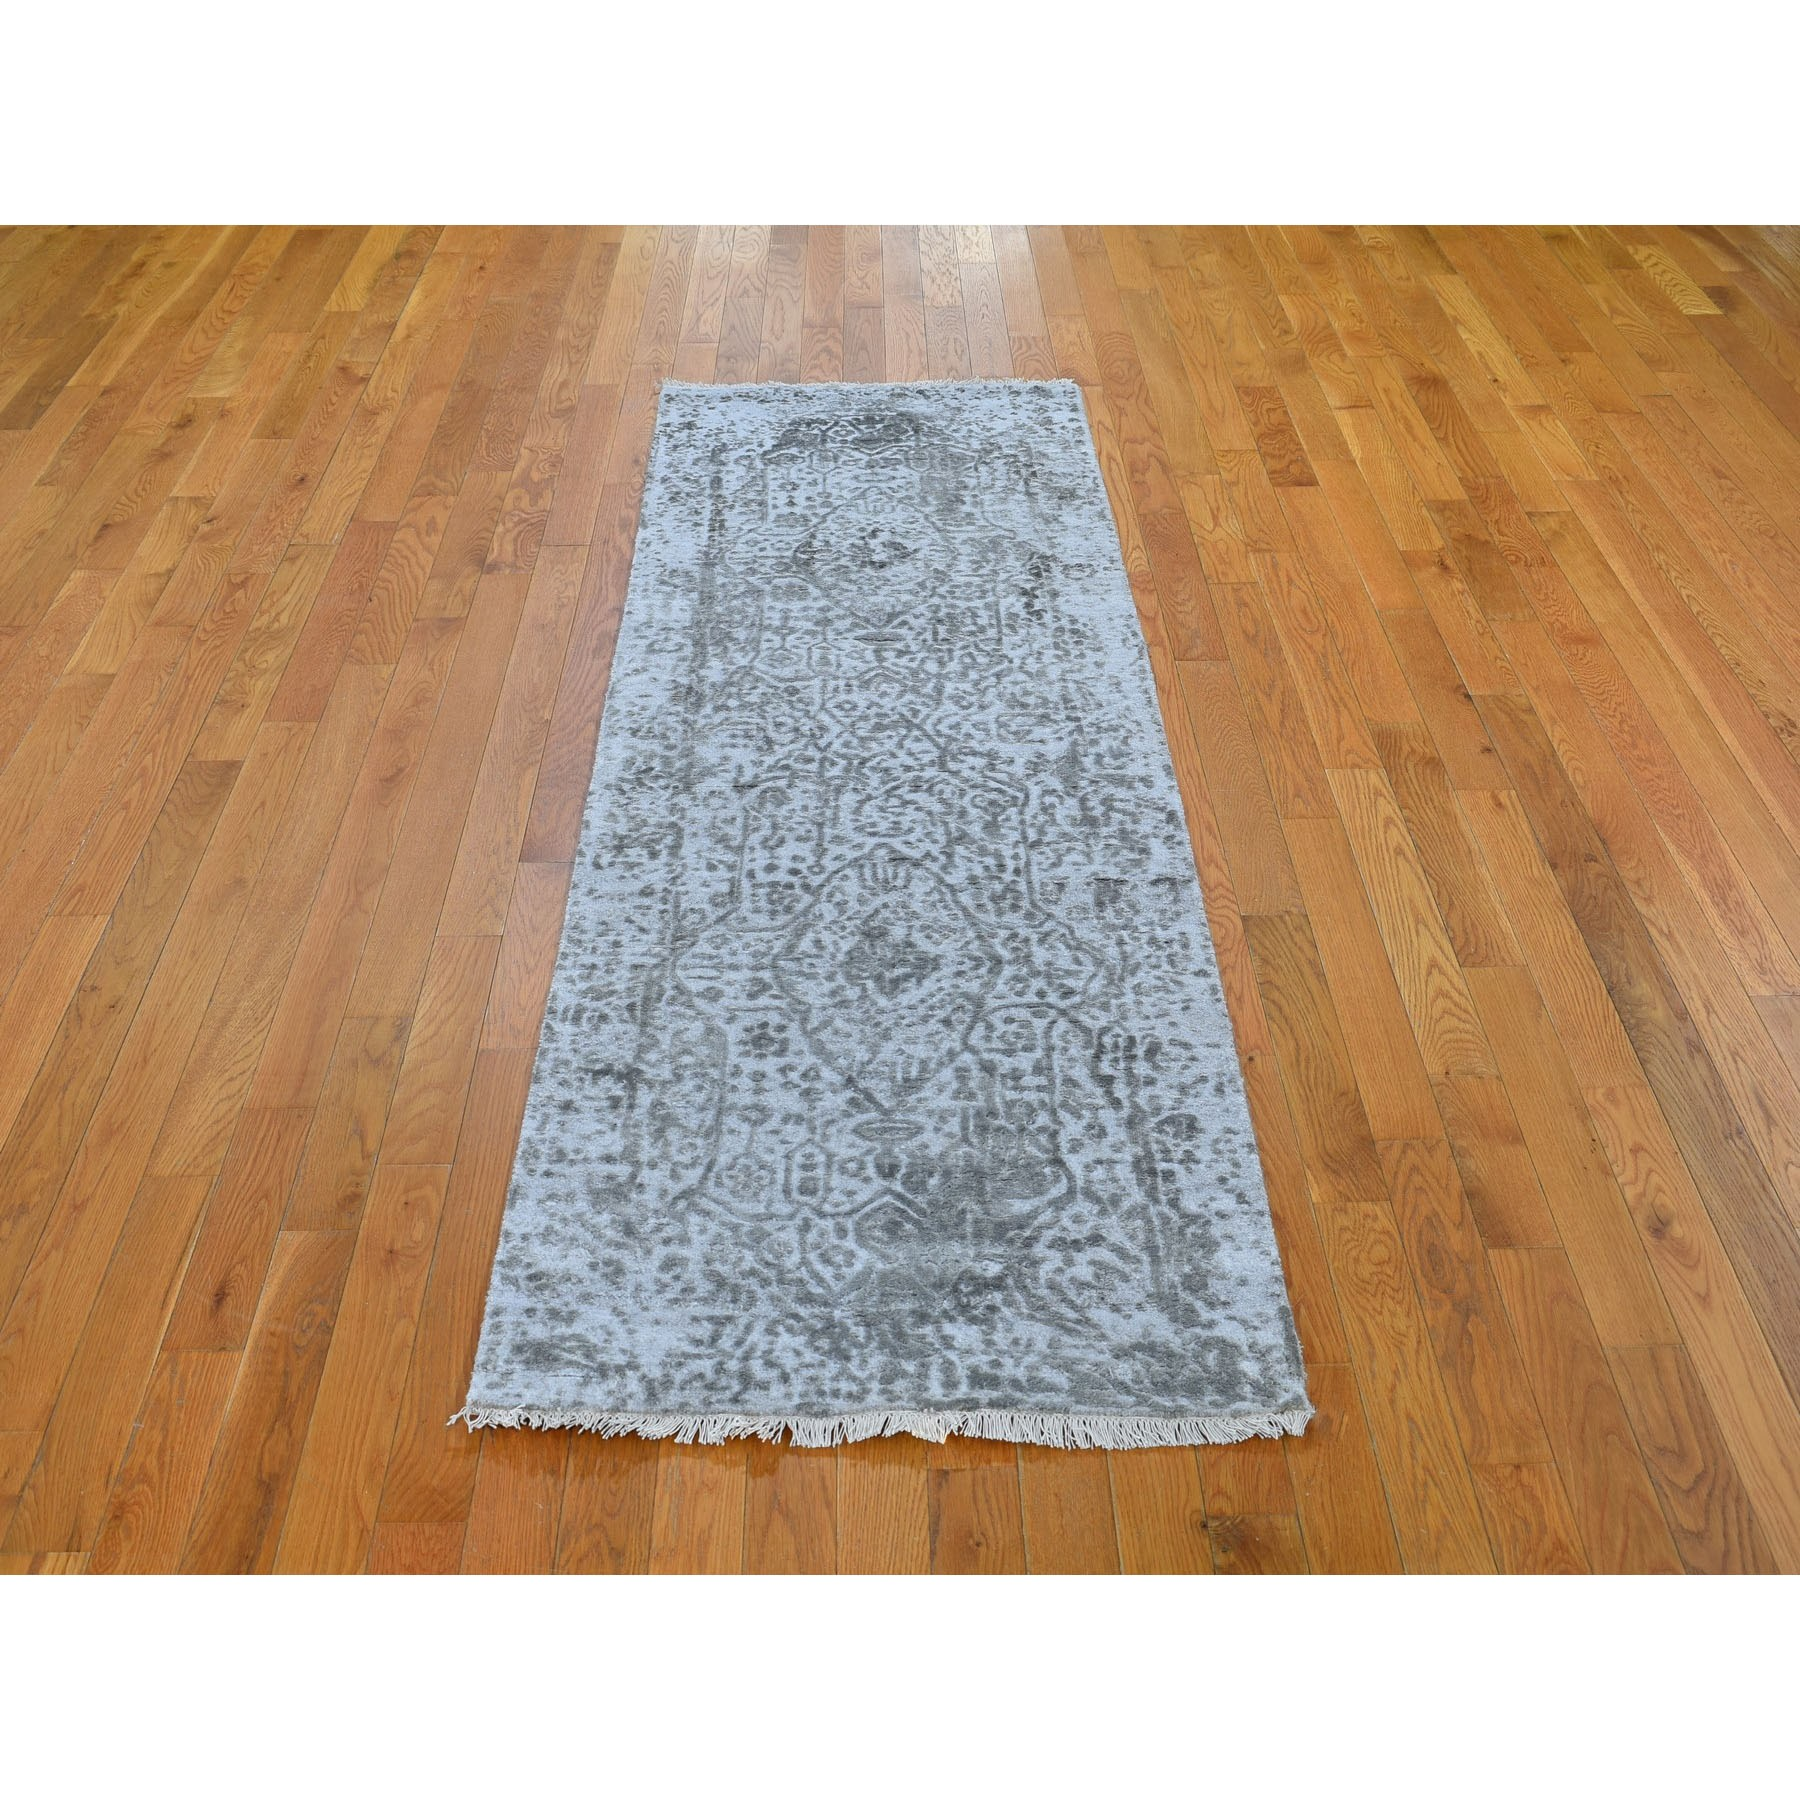 2-7 x8- Silver-Dark Gray Erased Persian Design Runner Wool and Pure Silk Hand Knotted Oriental Rug